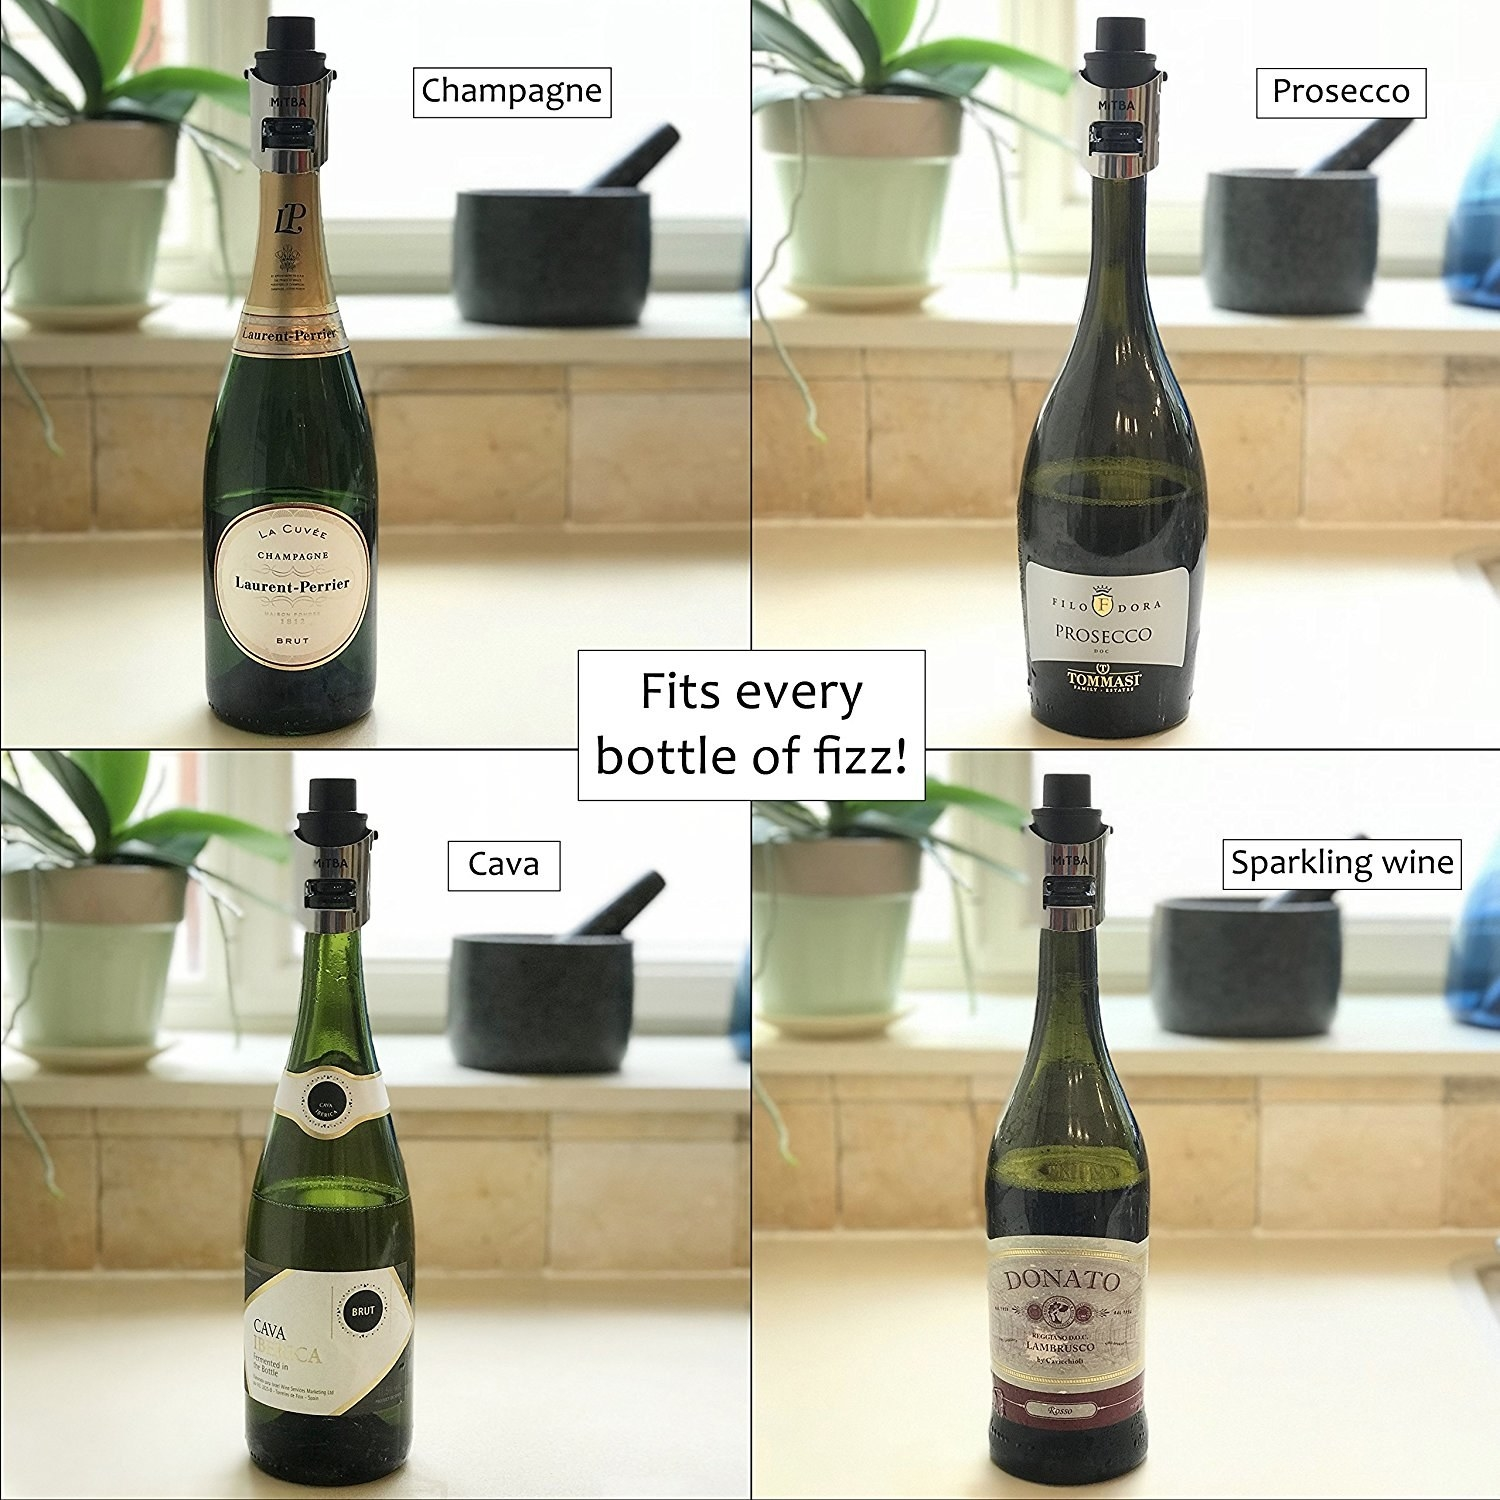 A graphic showing that it fits every bottle of fizz, including sparkling wine, cava, prosecco, and champagne